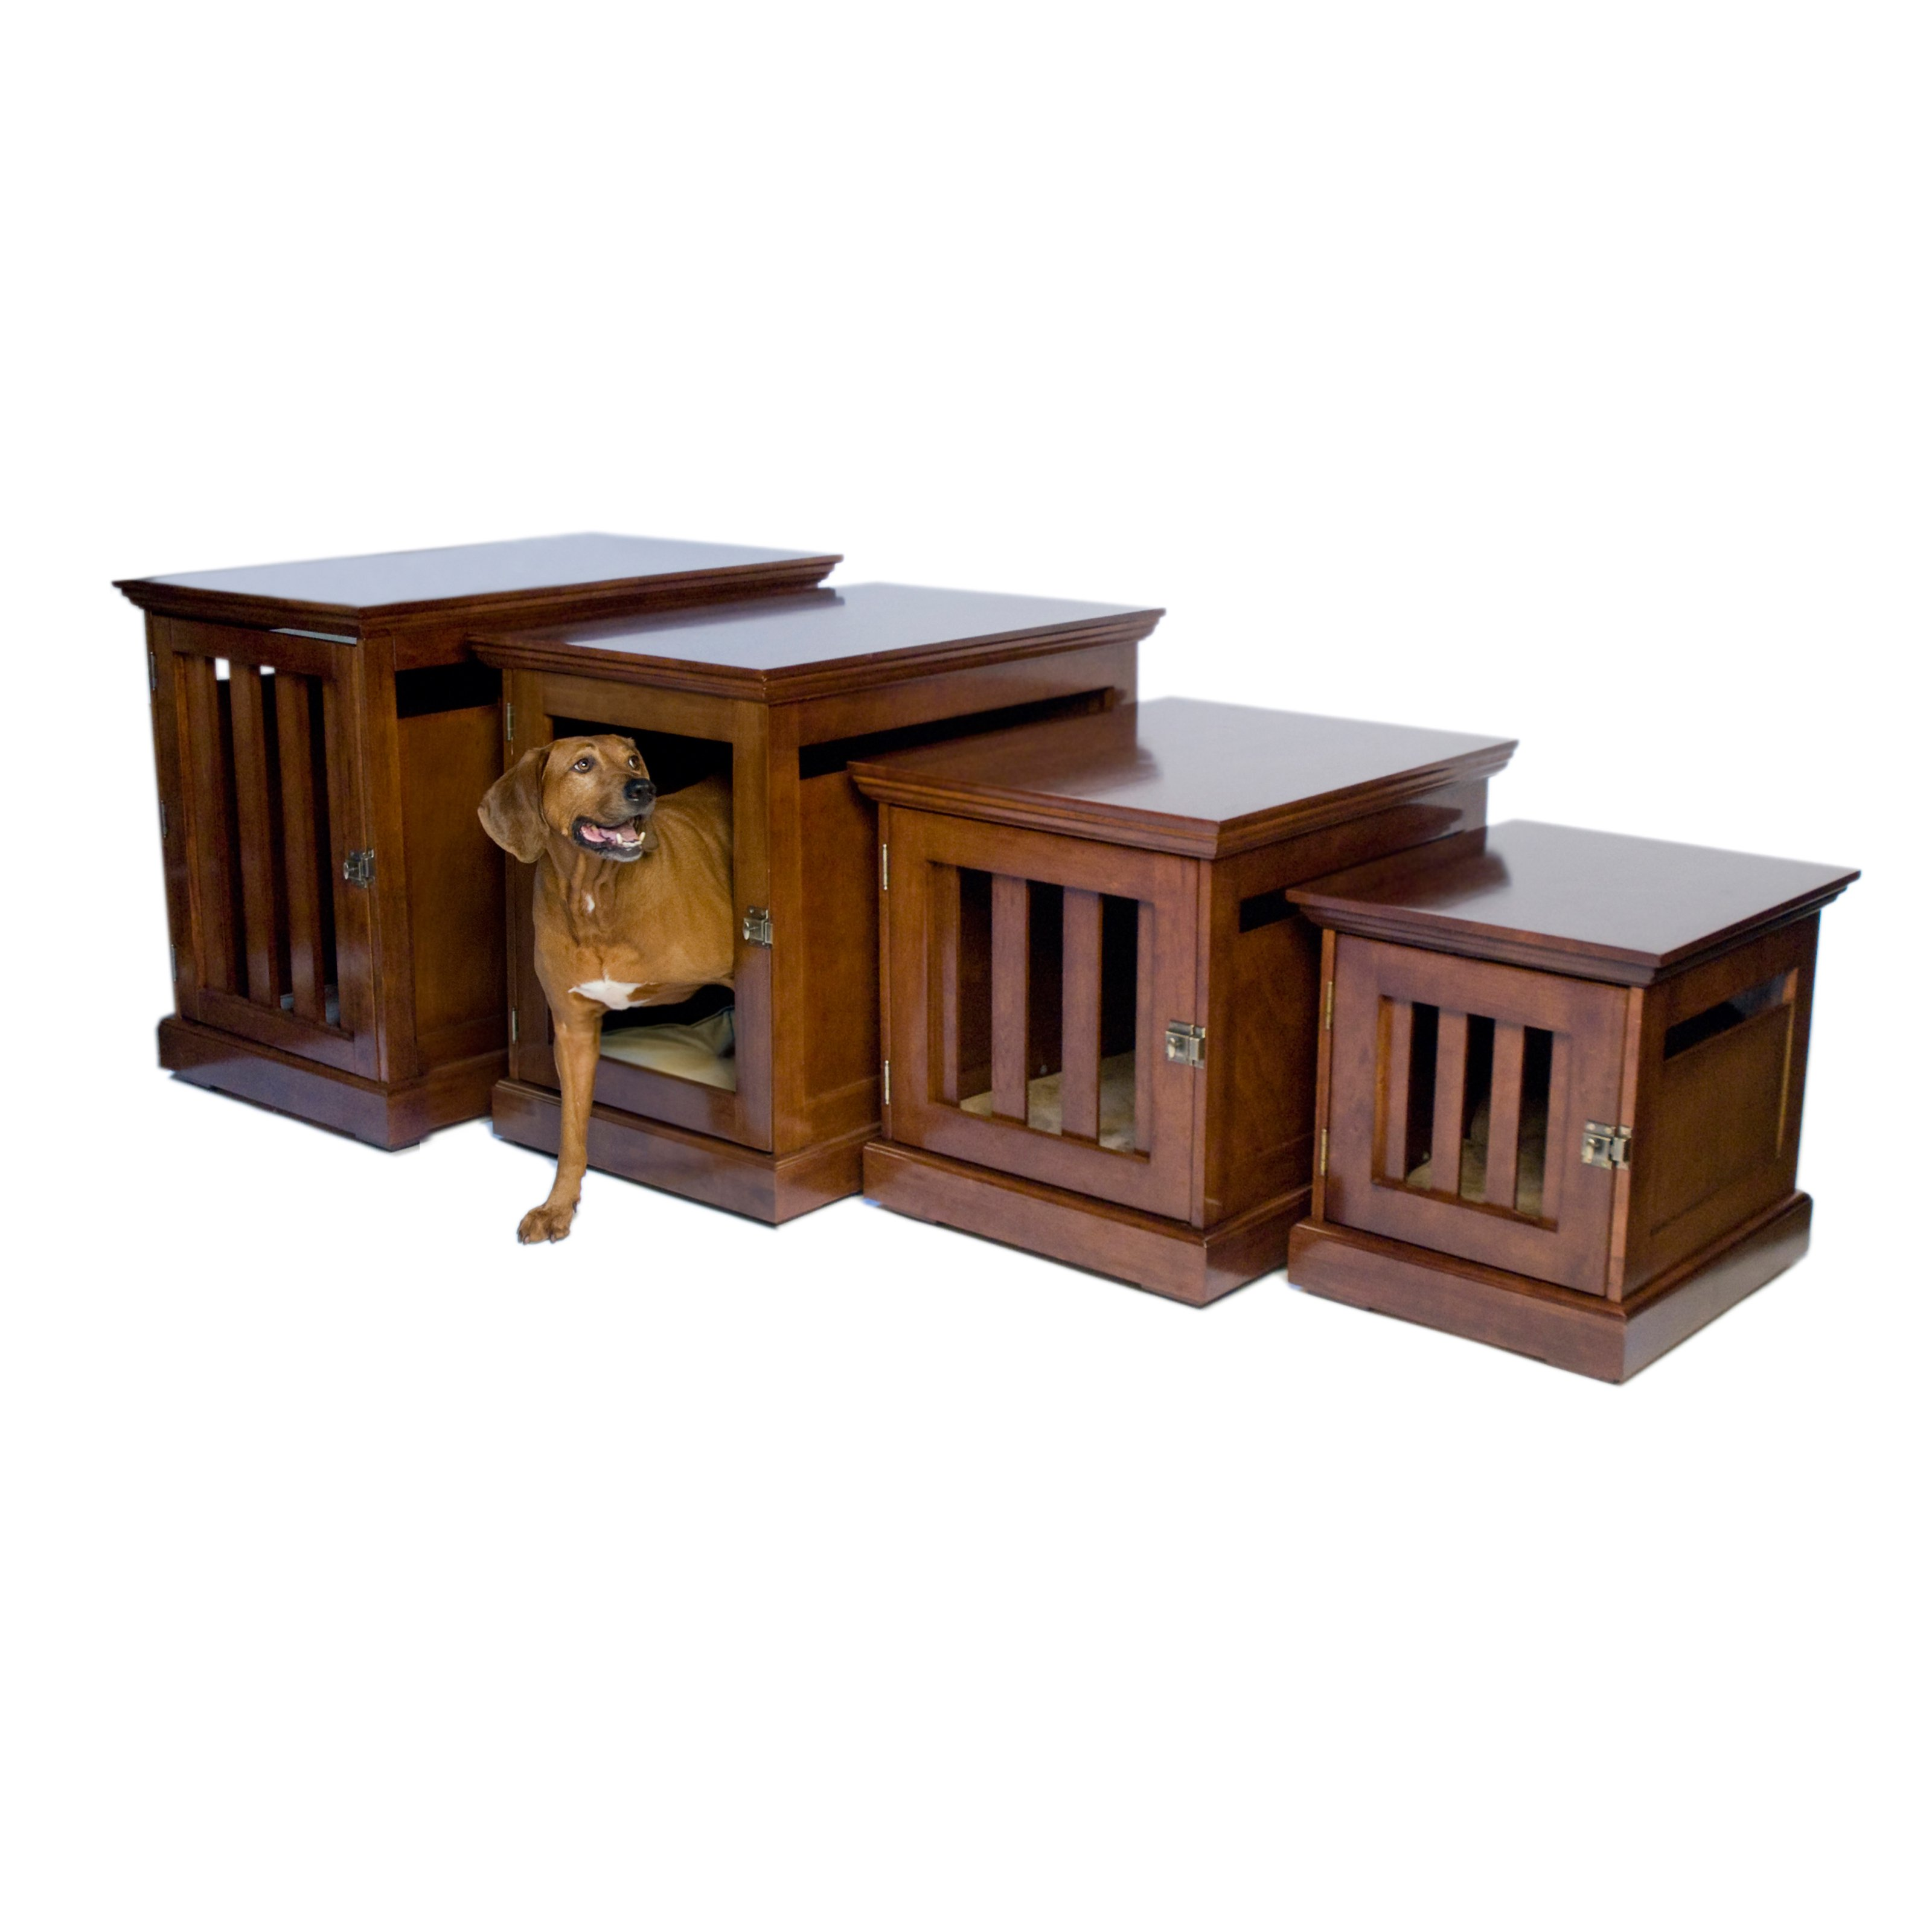 denhaus townhaus wood dog crate furniture small end table thomasville french provincial dining room mainstays shelf bookcase instructions laura ashley dinnerware sets brown sofa